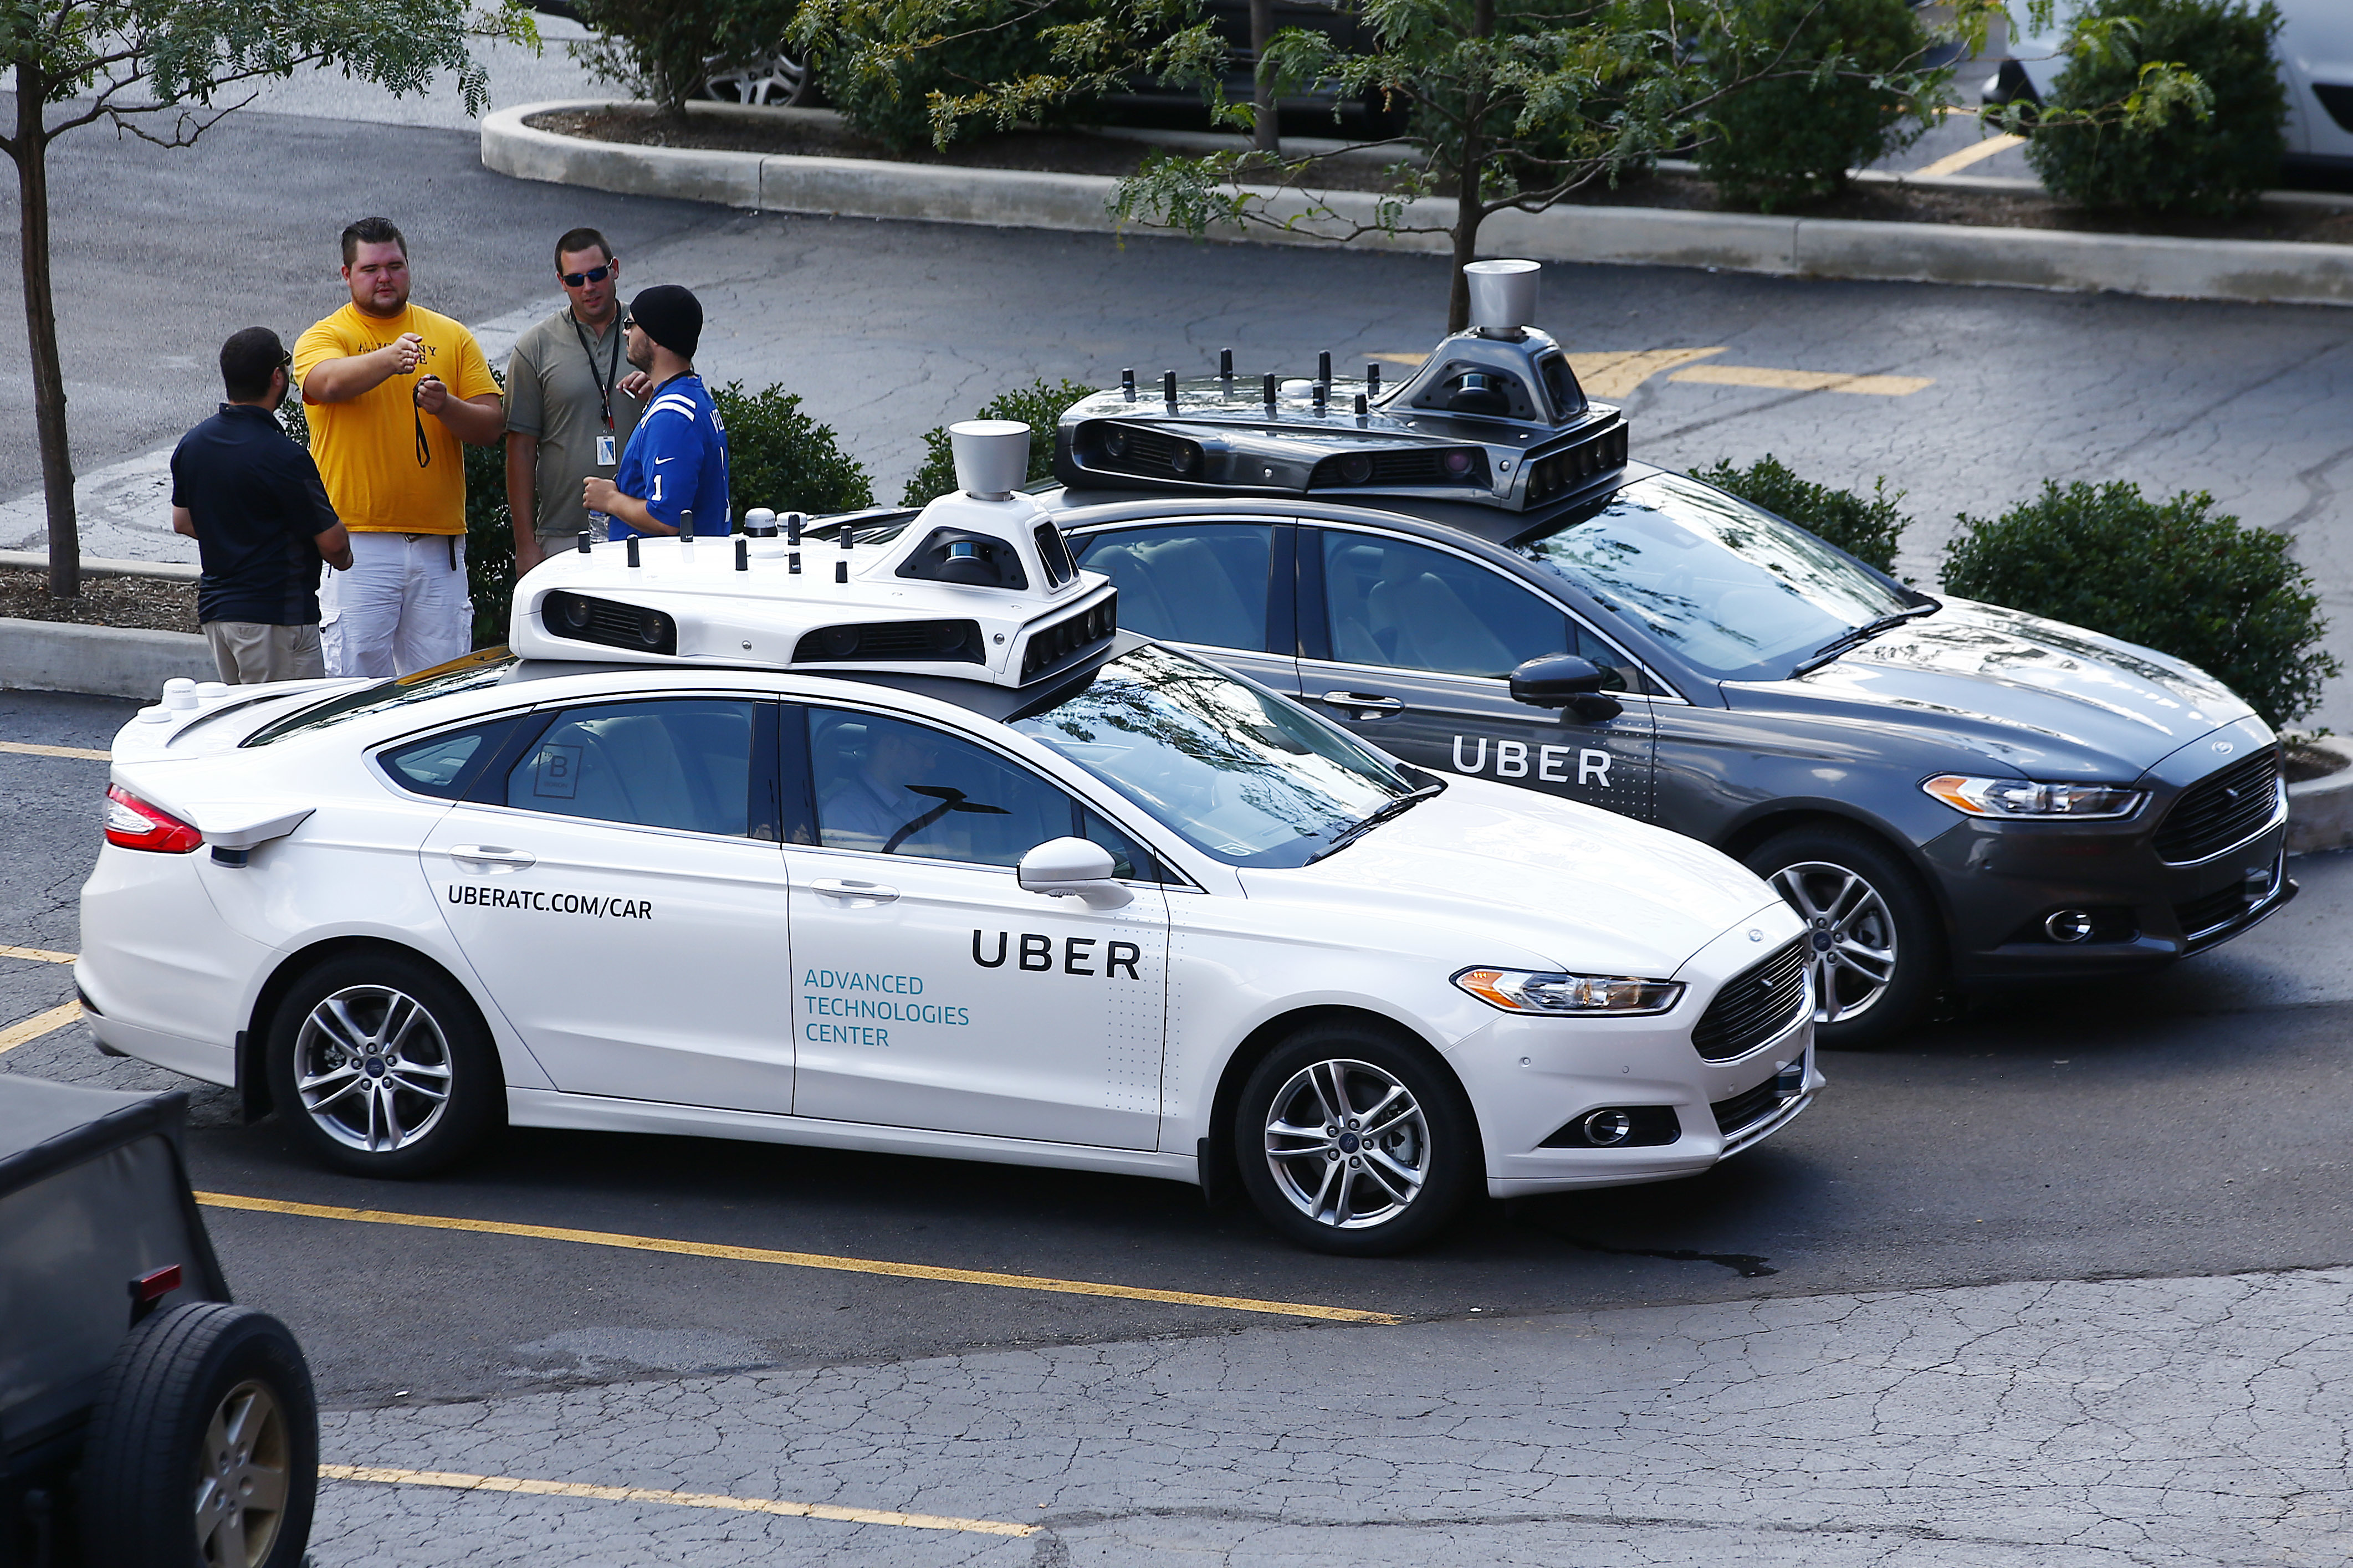 Uber's self-driving cars are being tested in Pittsburgh, August 2016 (AP Photo/Jared Wickerham)